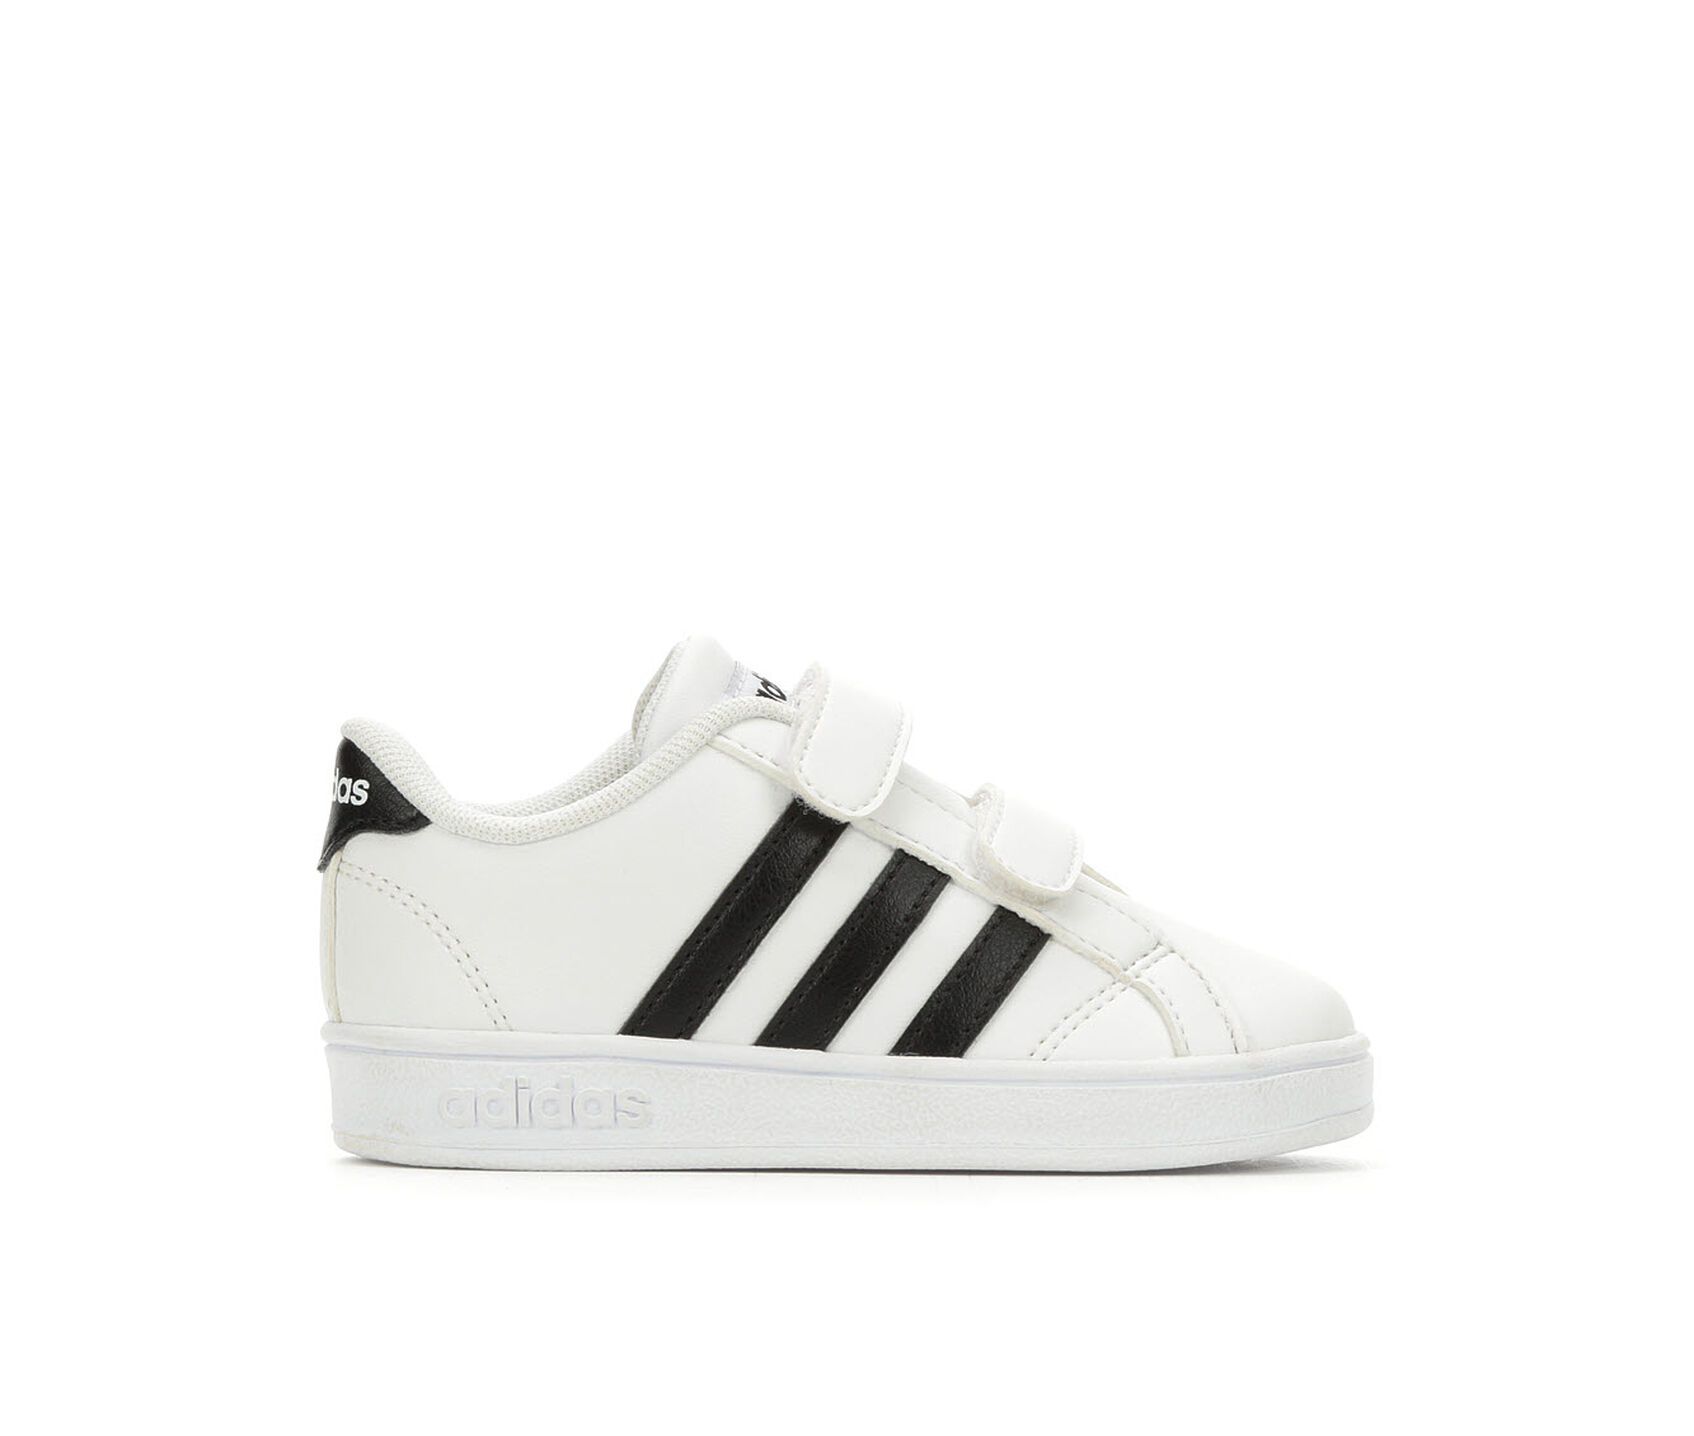 5a4257bc52a2 ... Adidas Infant  amp  Toddler Baseline Sneakers. Previous